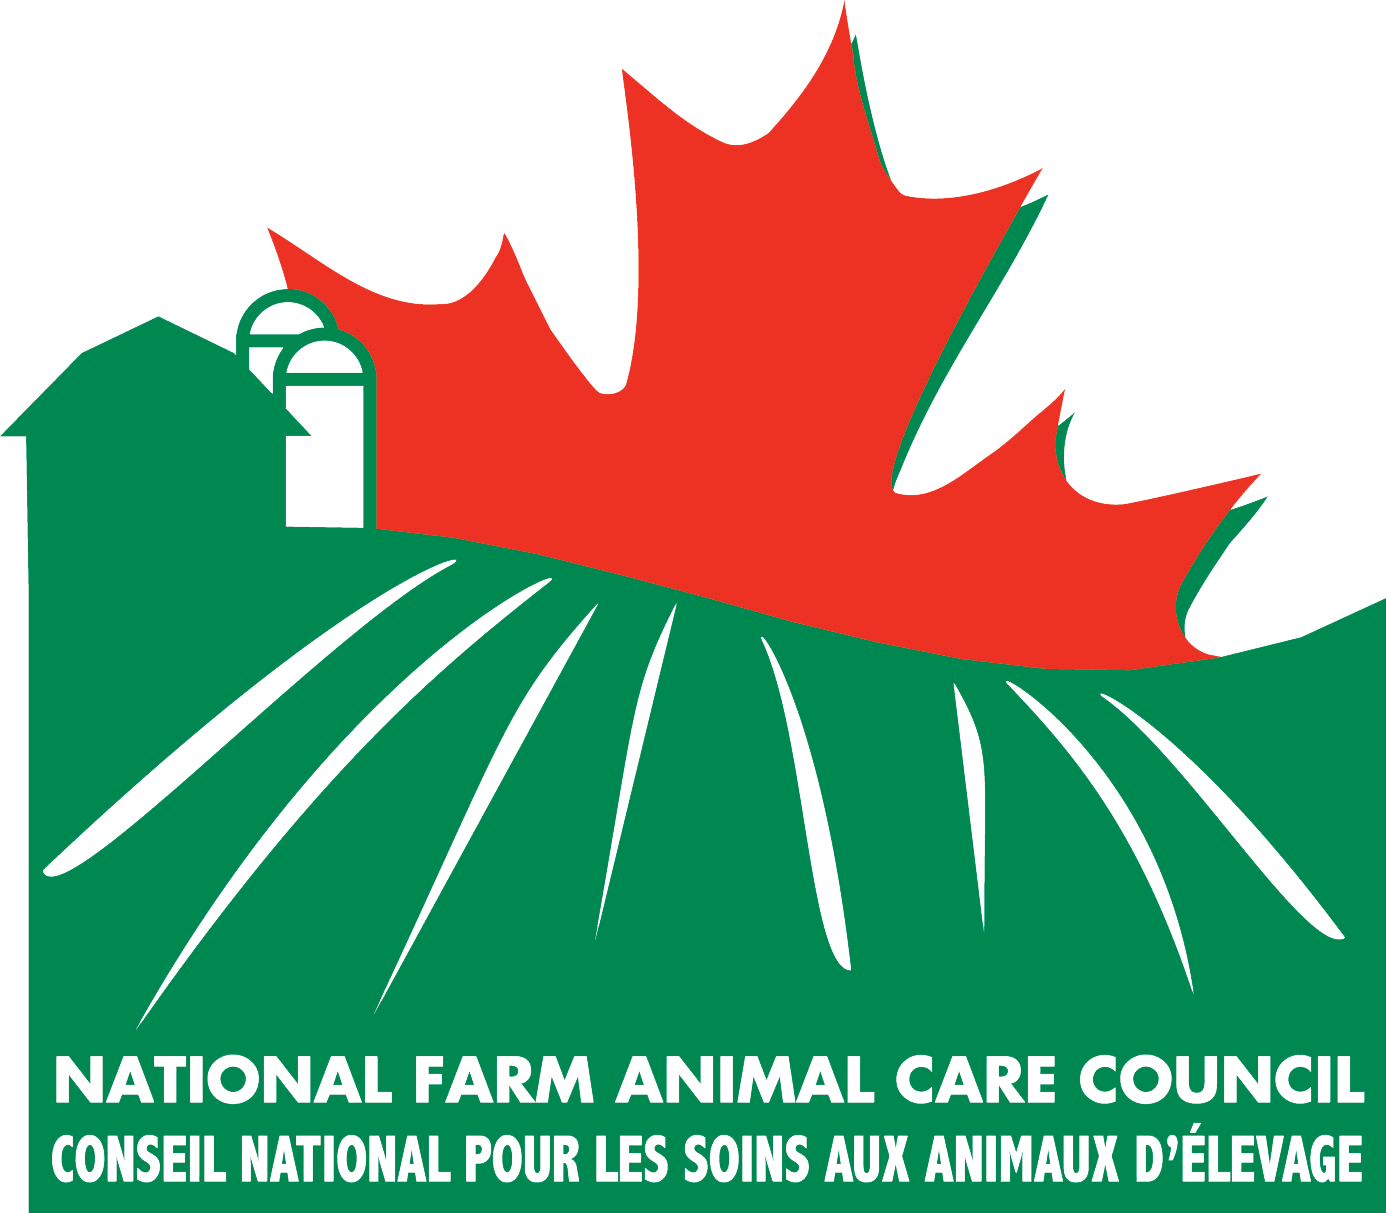 NFACC_logo_OFFICIAL_no_background.png